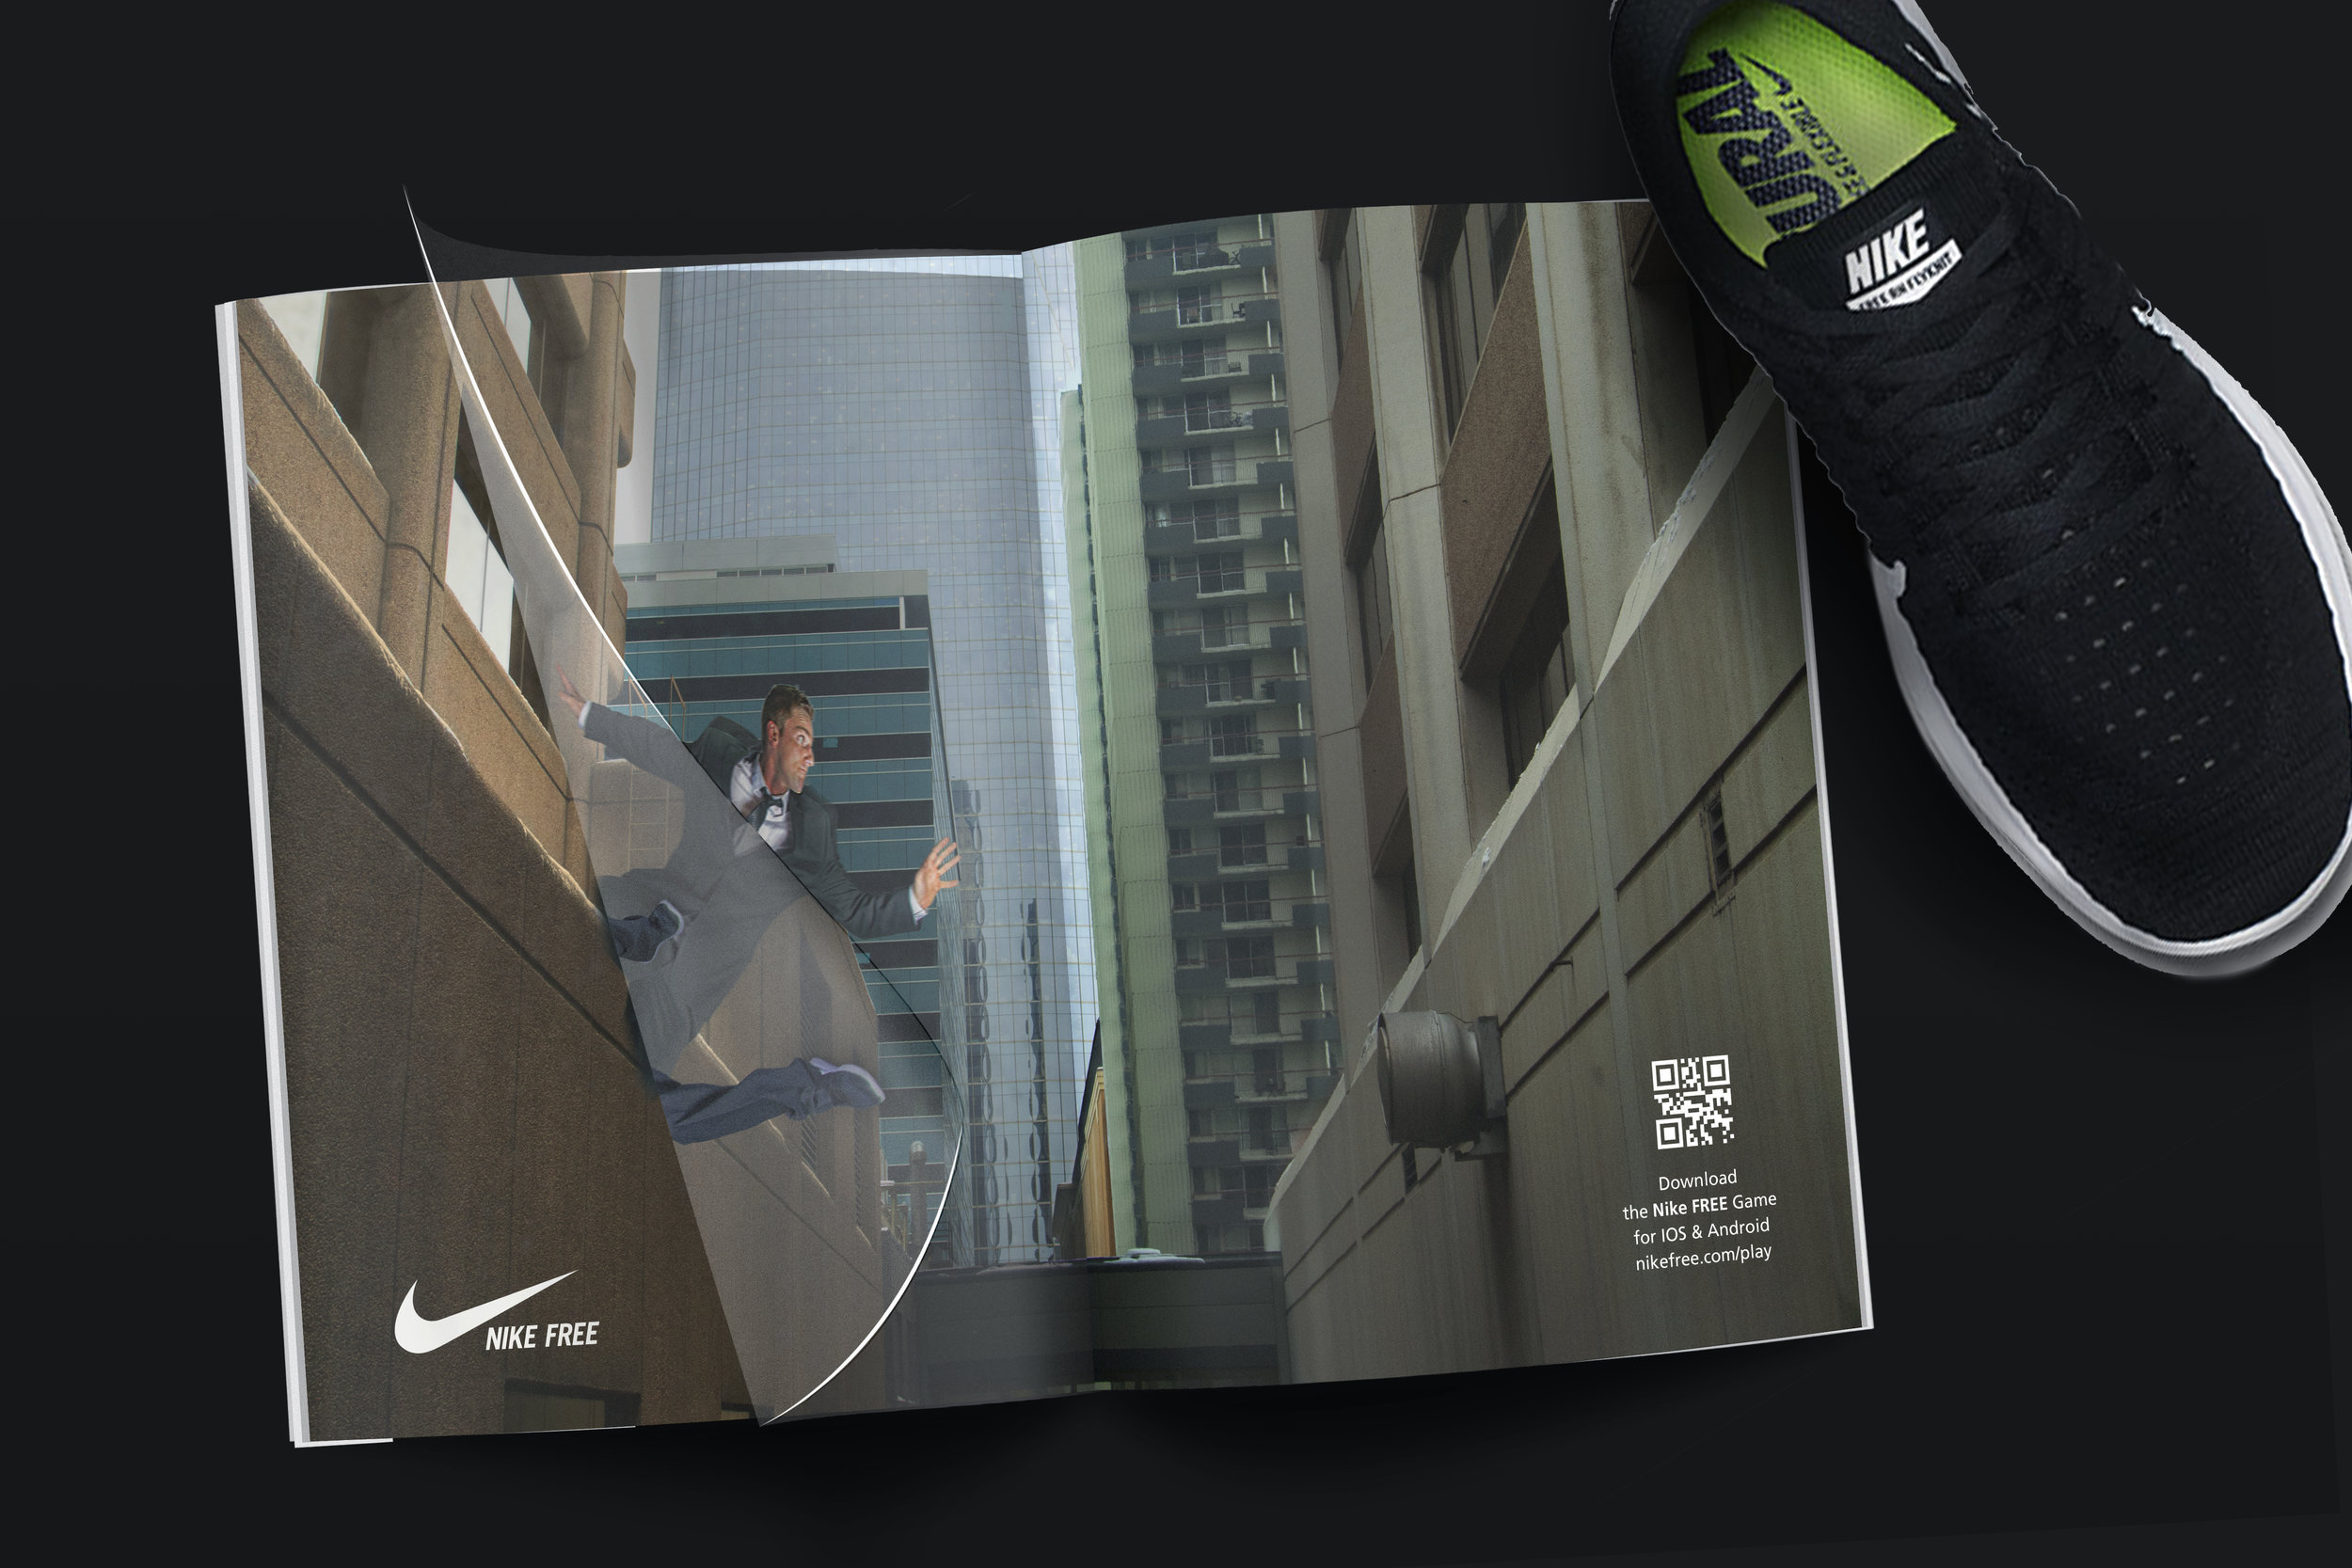 Magazine Spread:  This is a 2-Page spread, with a transparent sheet in between as shown in the video to simulate the act of parkour by jumping from building to building.